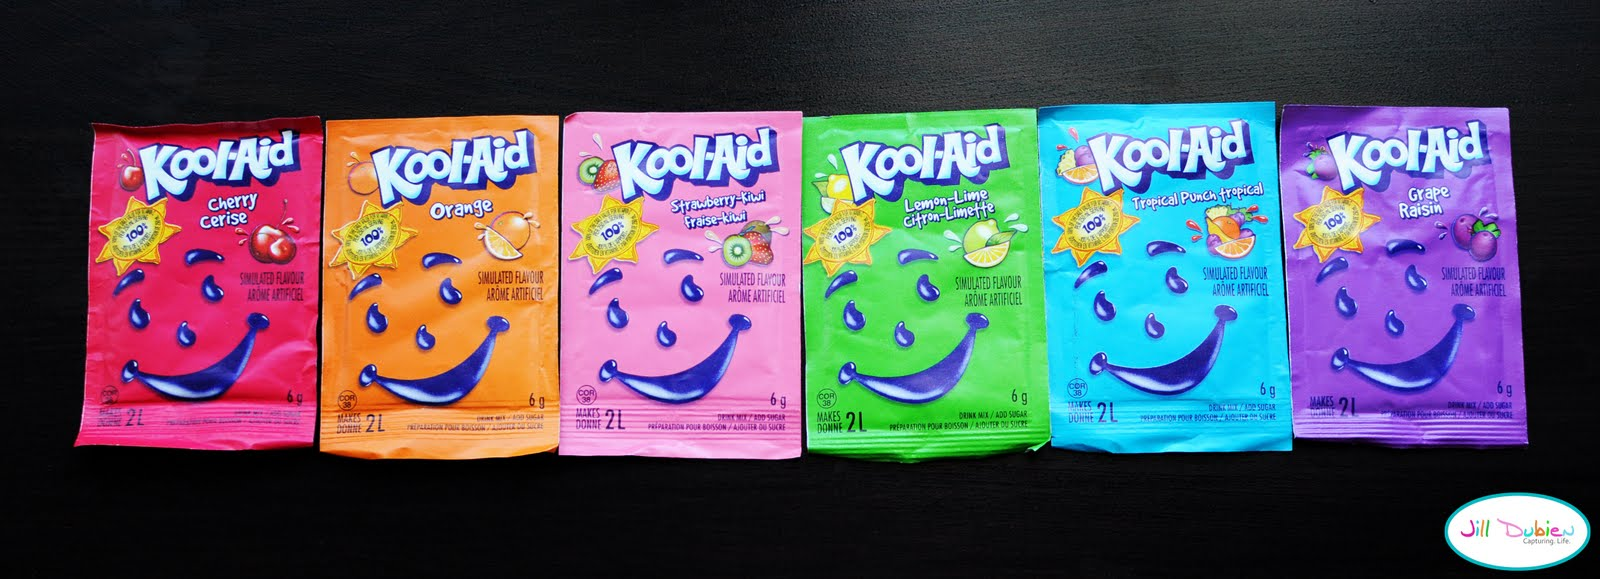 Kool Aid Play Dough Printable Kool-aid Play Doh